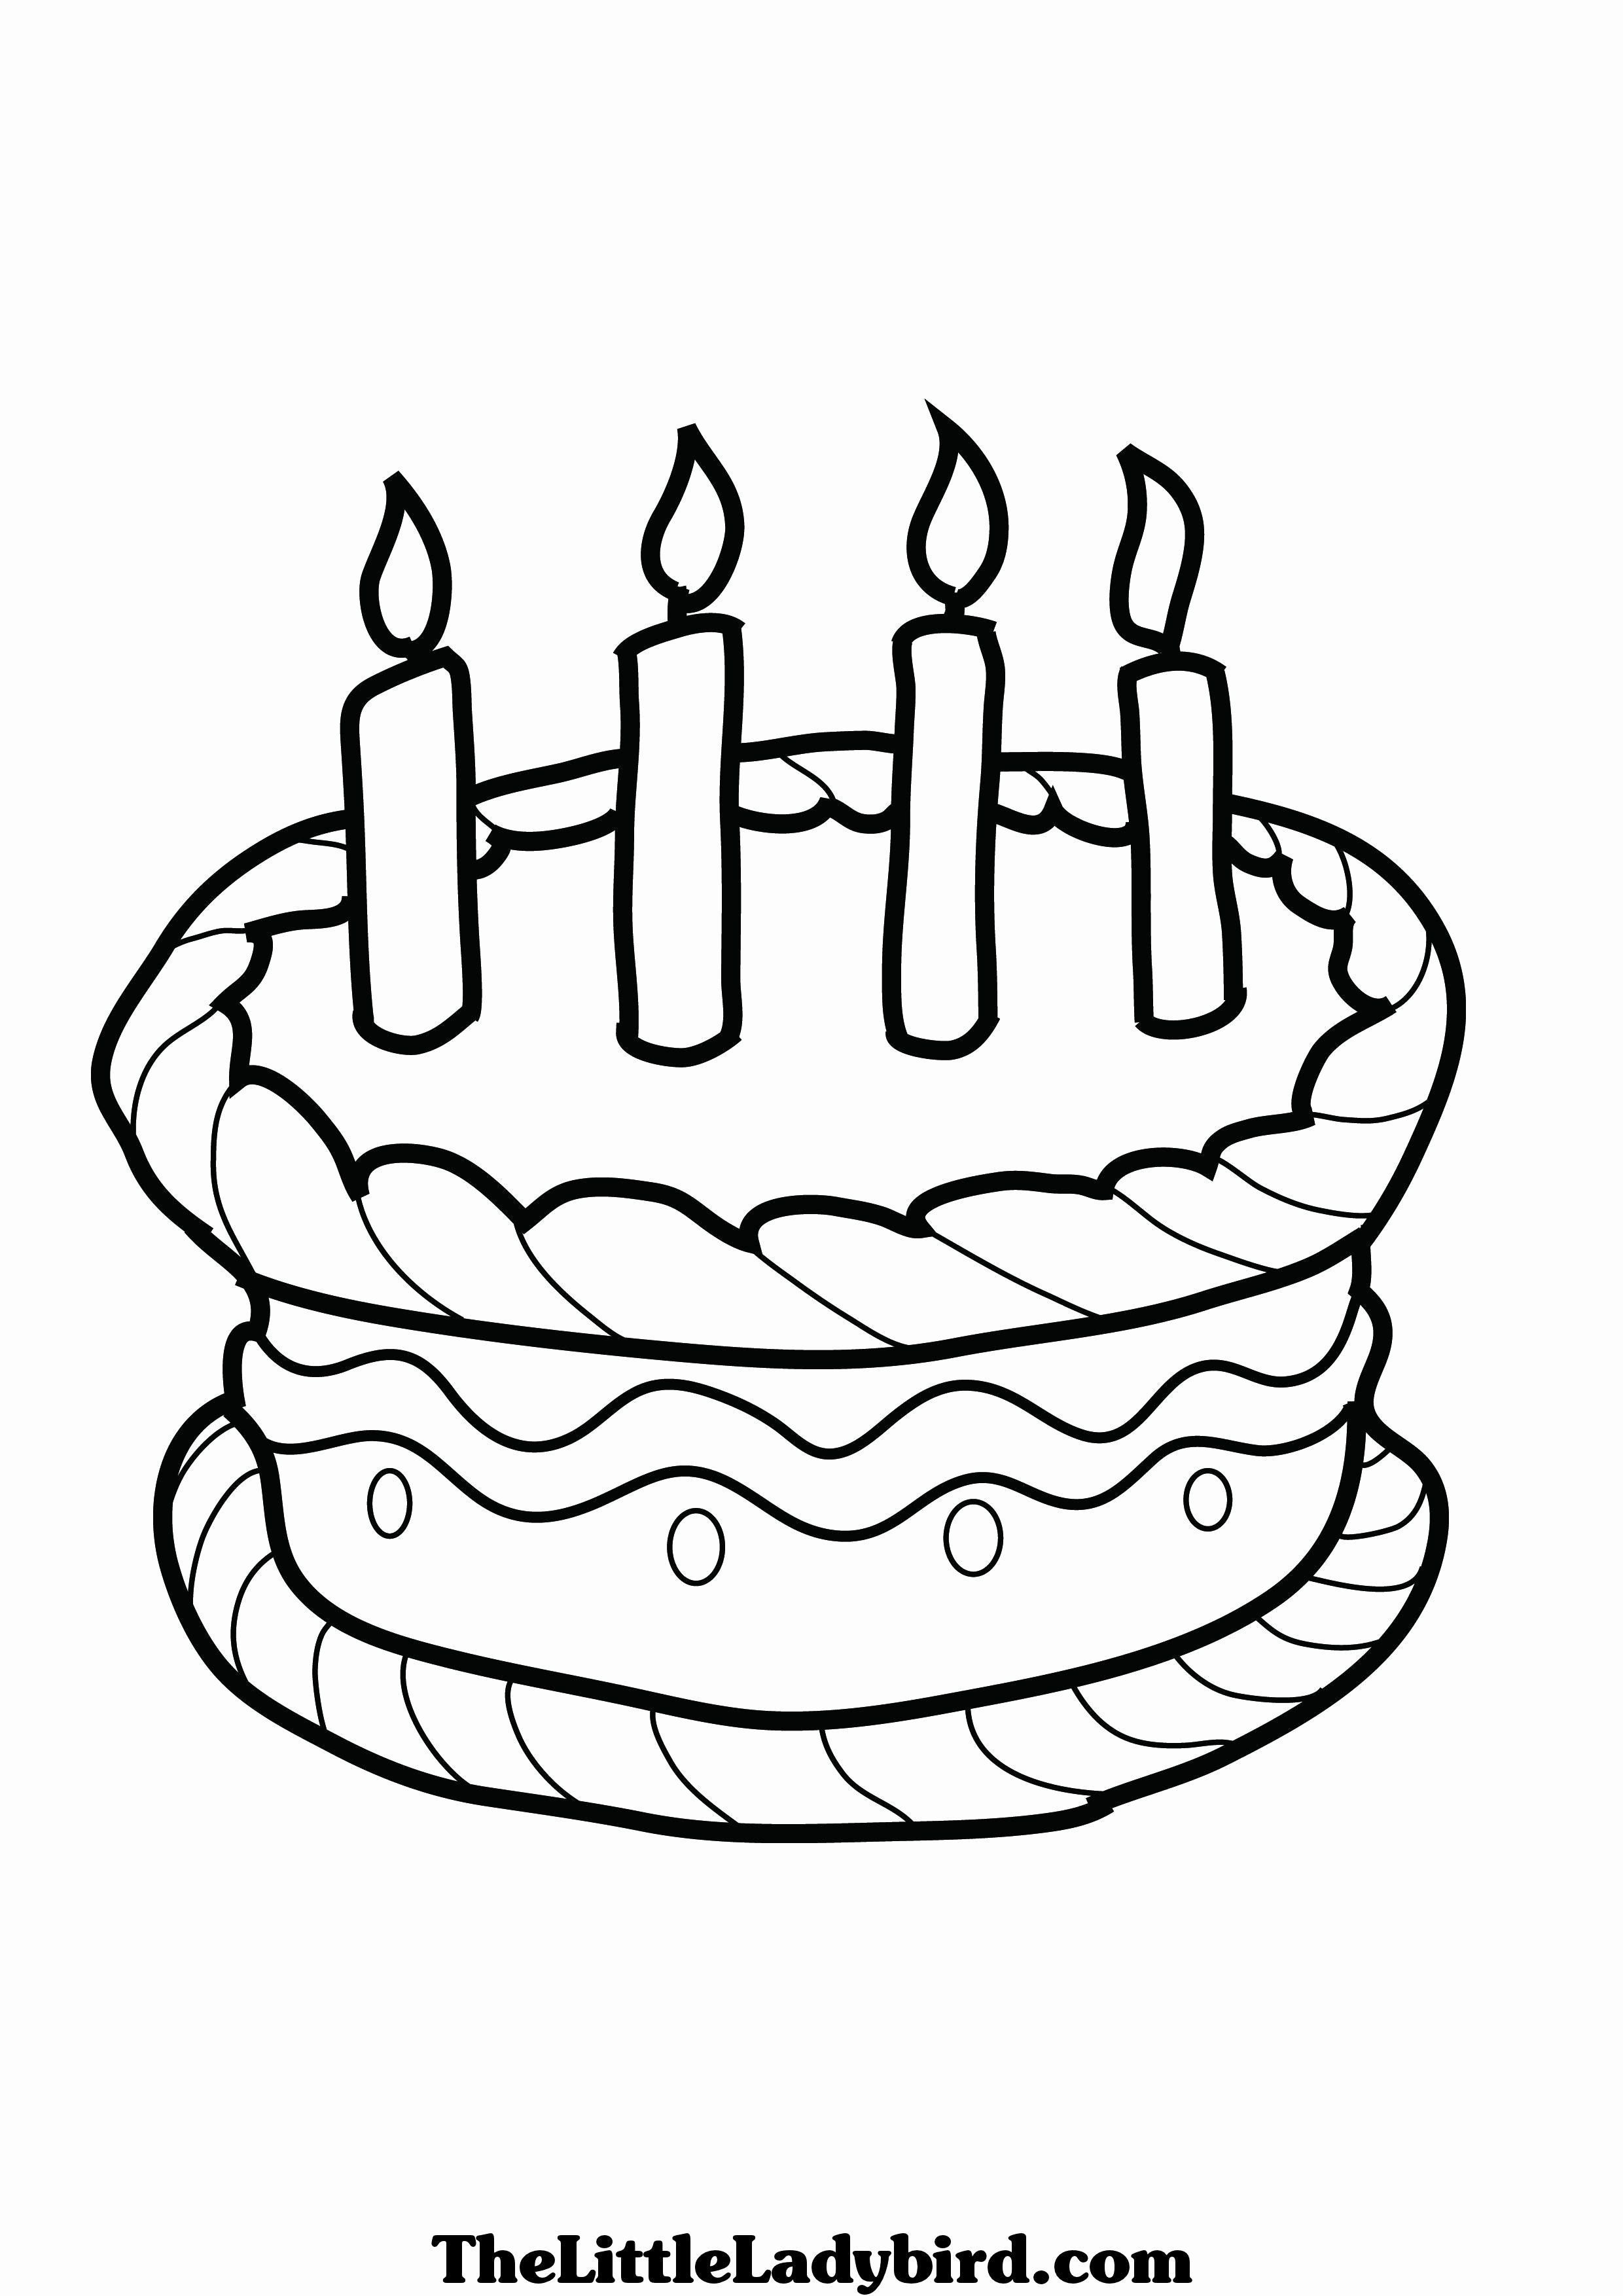 50++ Birthday cake clipart simple ideas in 2021